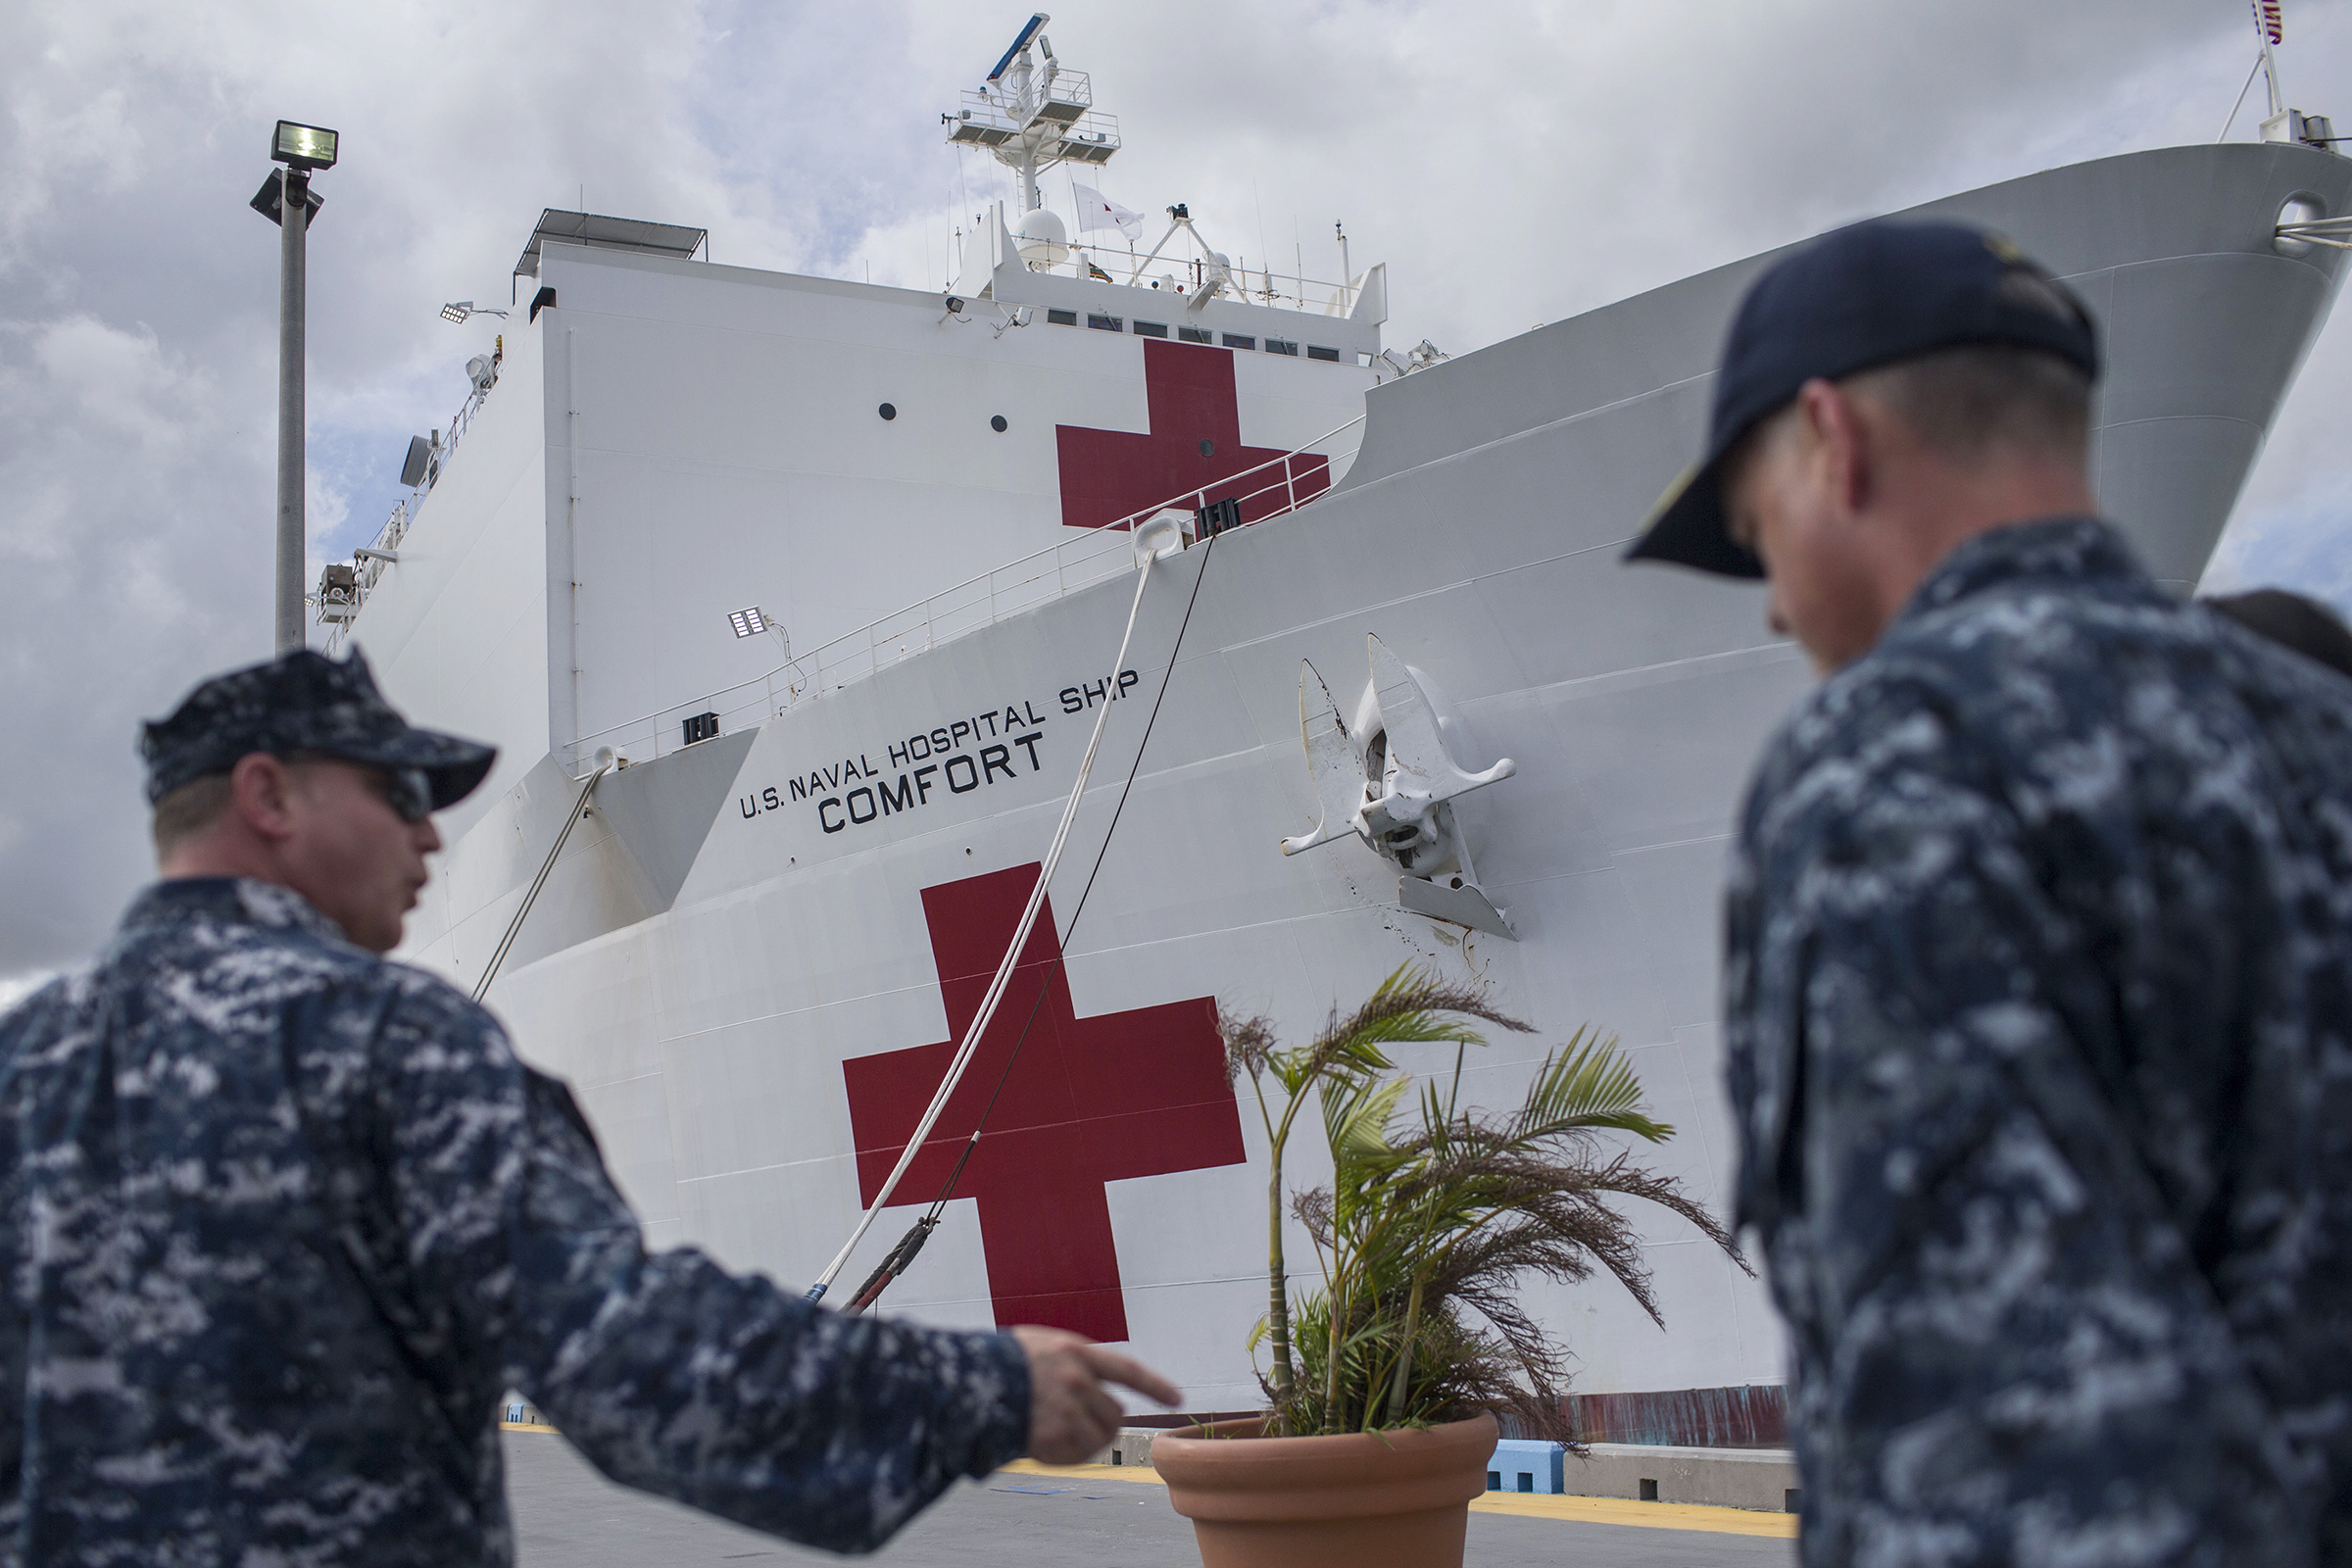 The USNS Comfort in San Juan, Puerto Rico, on Nov. 10, 2017